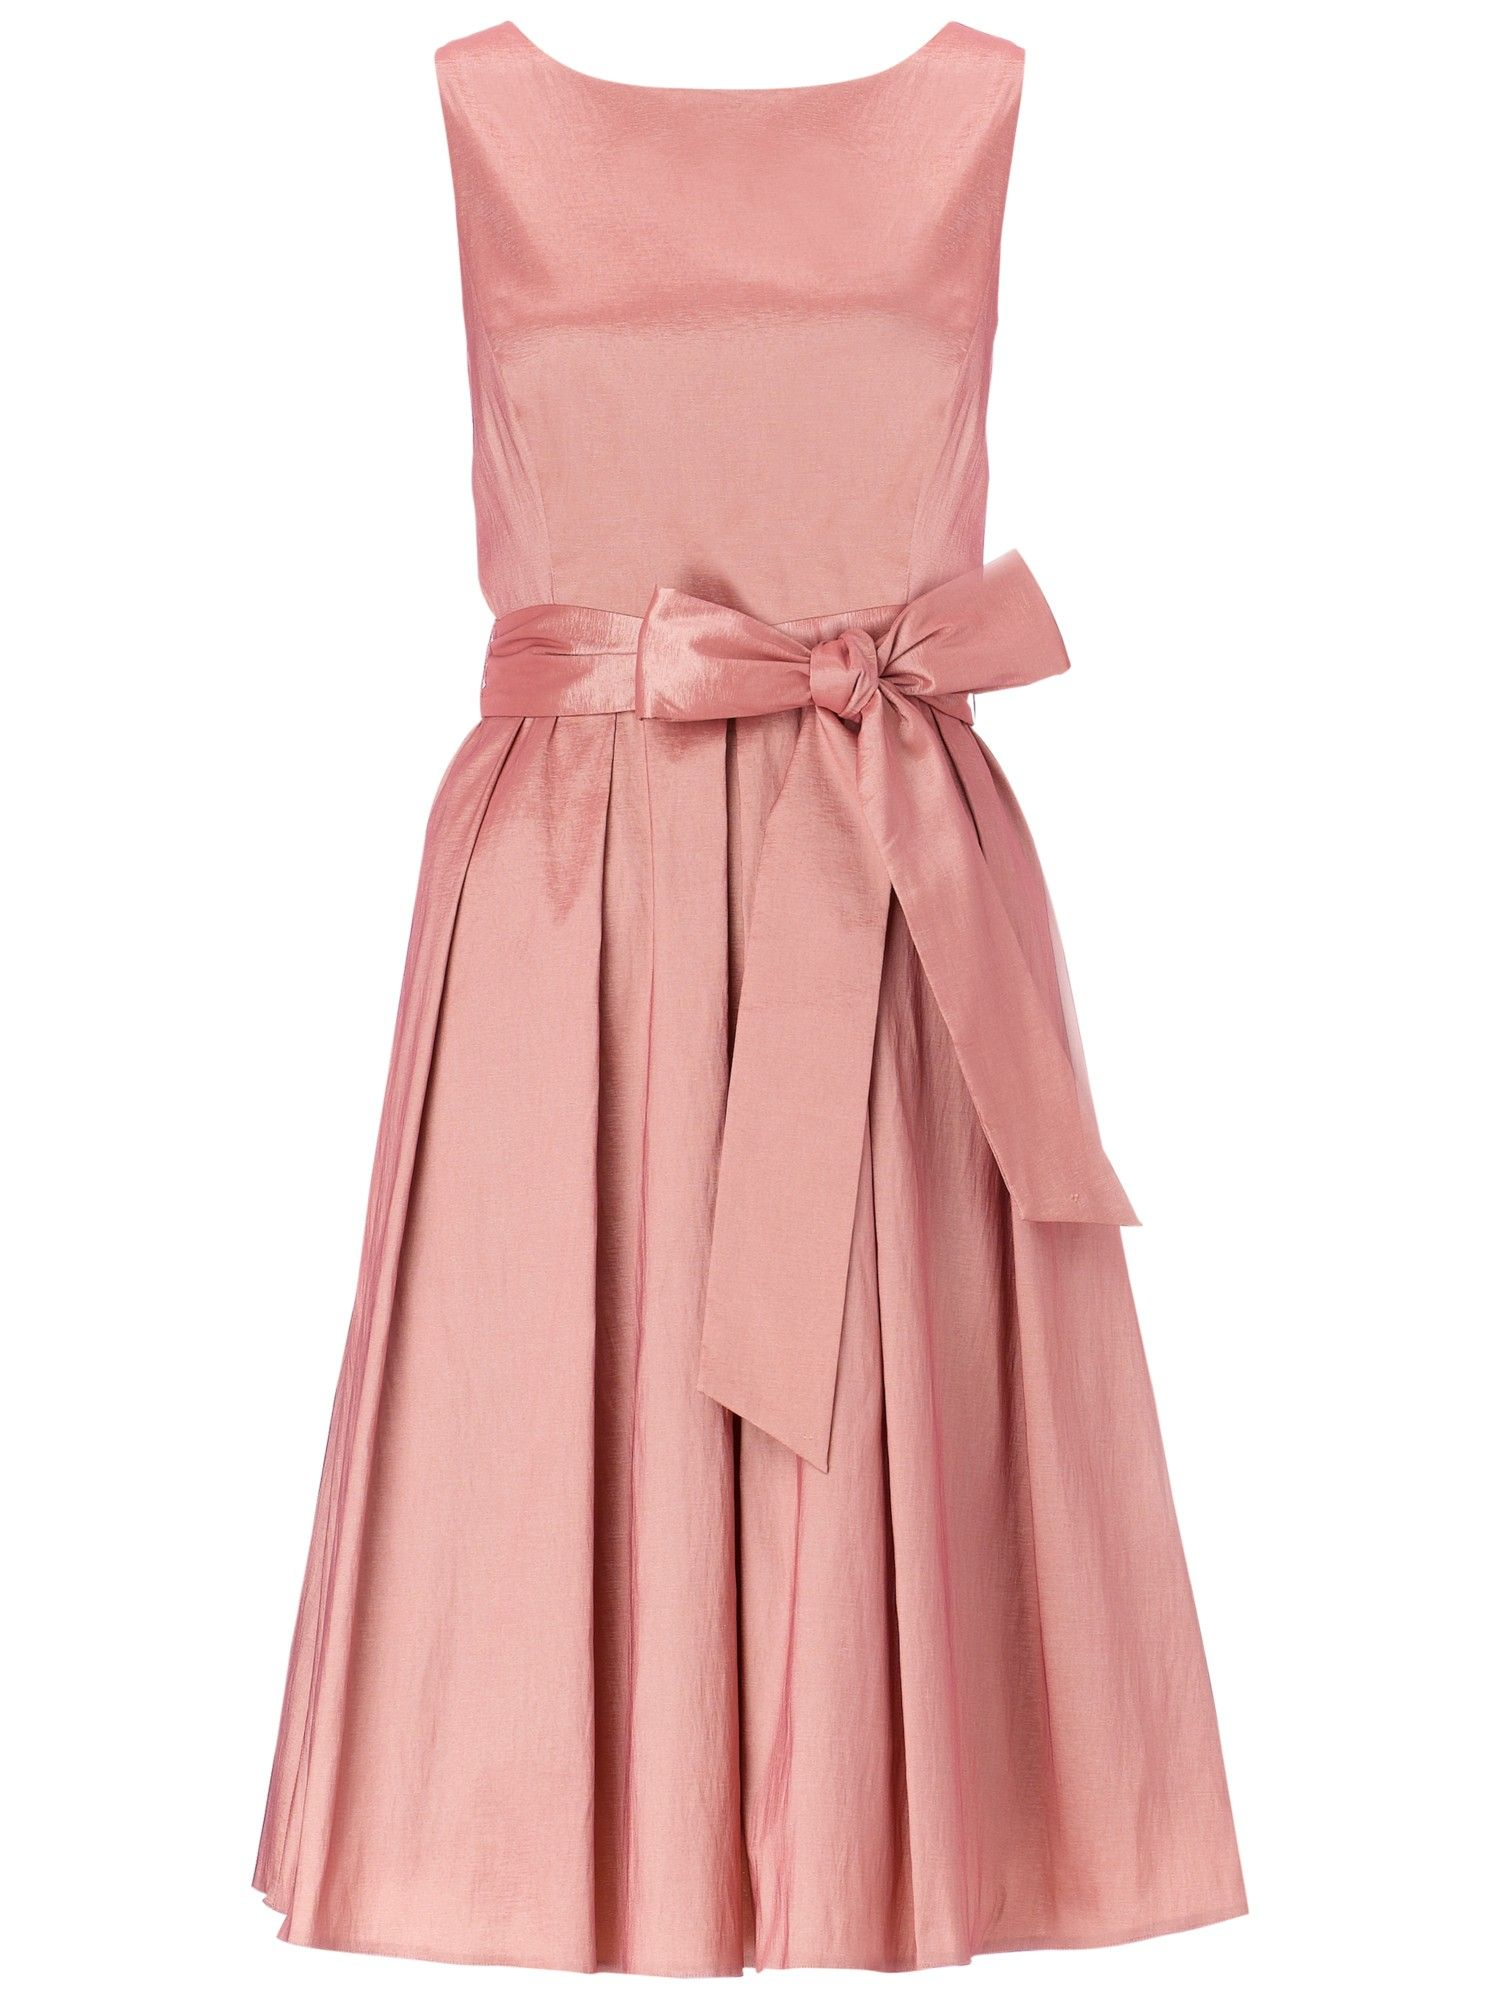 Summer Wedding Outfits 2018 Mother of the Bride or Groom MOTB Suits ...